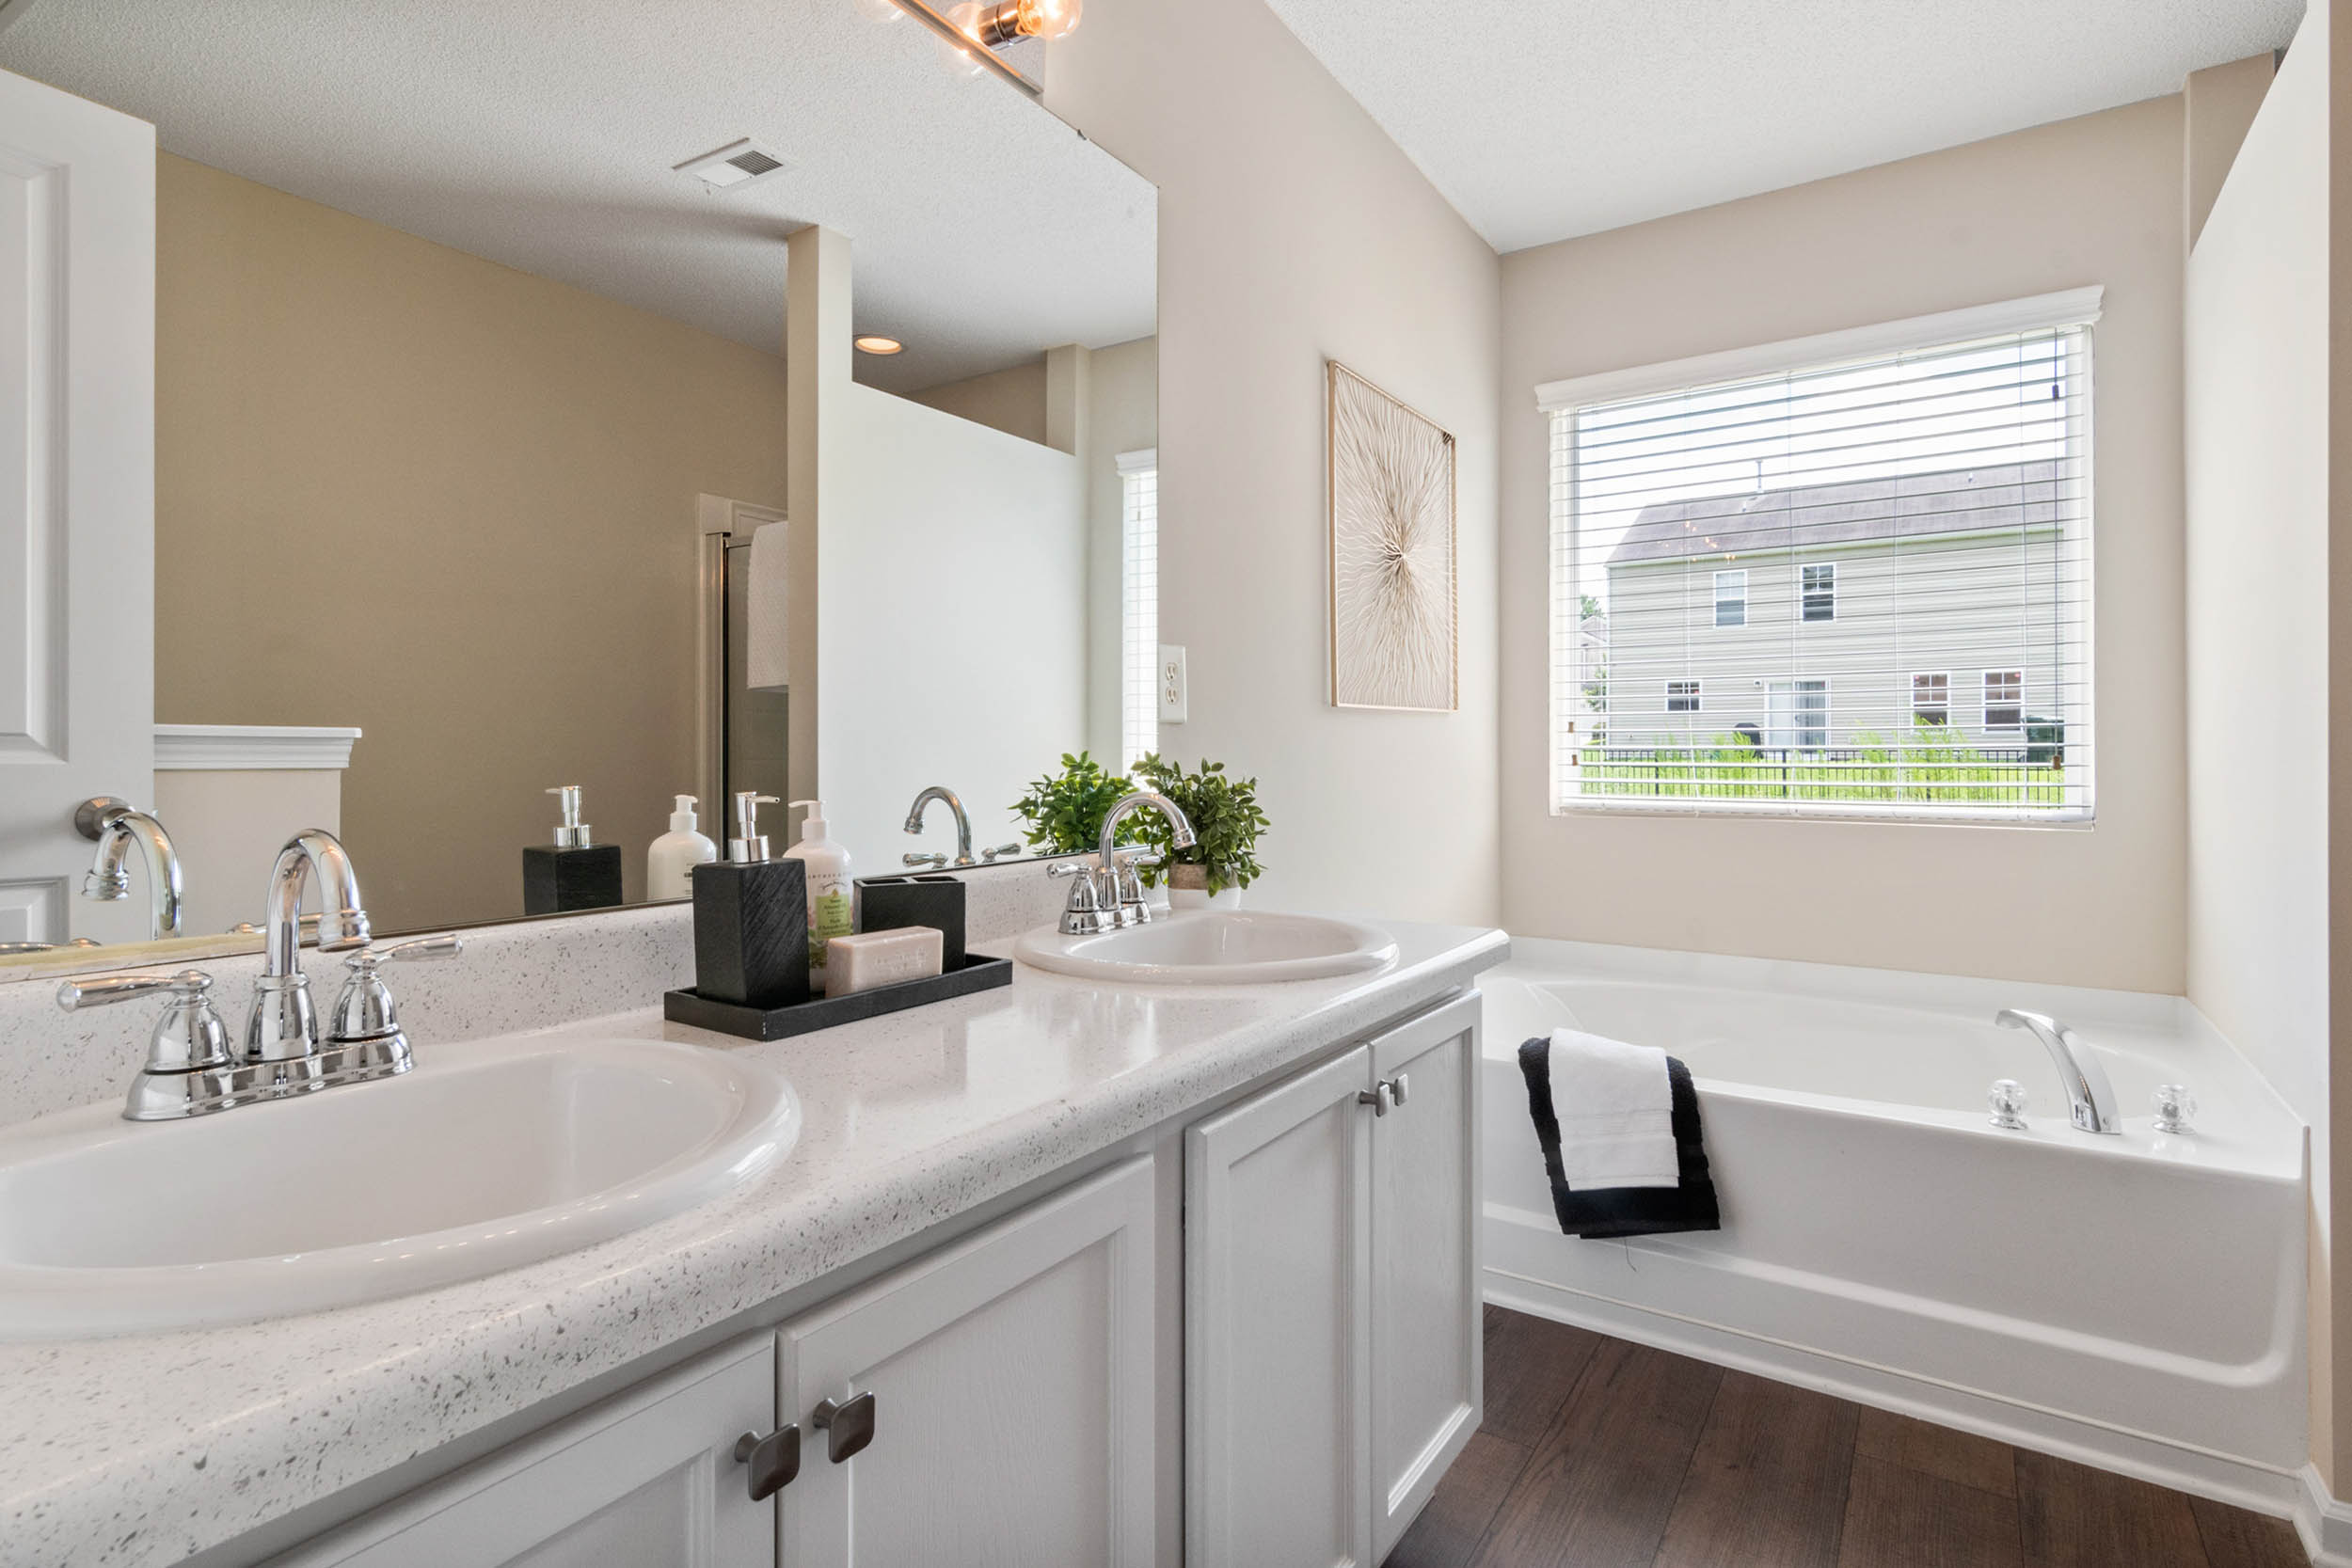 bathroom realestate blog 01 Business Photography Real estate photography made easy